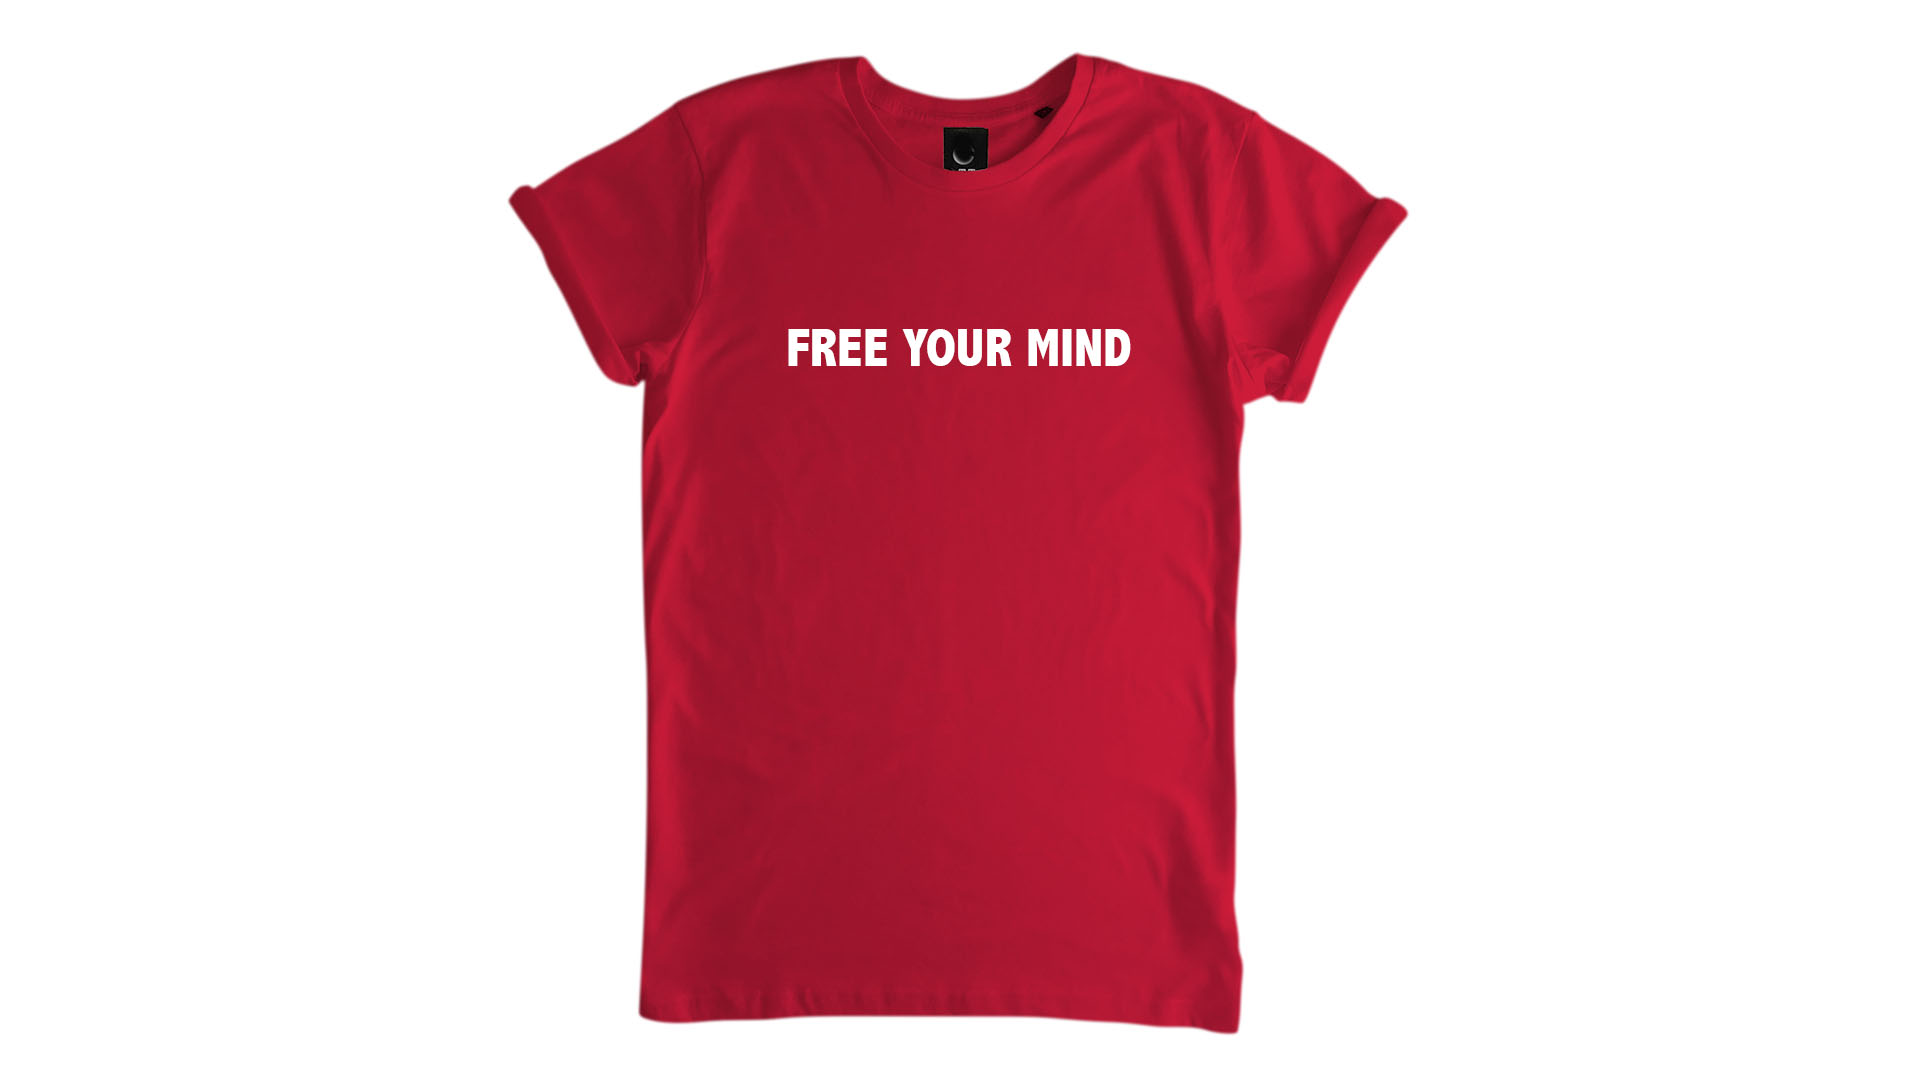 LiveLearn.Yoga Yoga T-Shirt Organic Cotton Free Your Mind Red